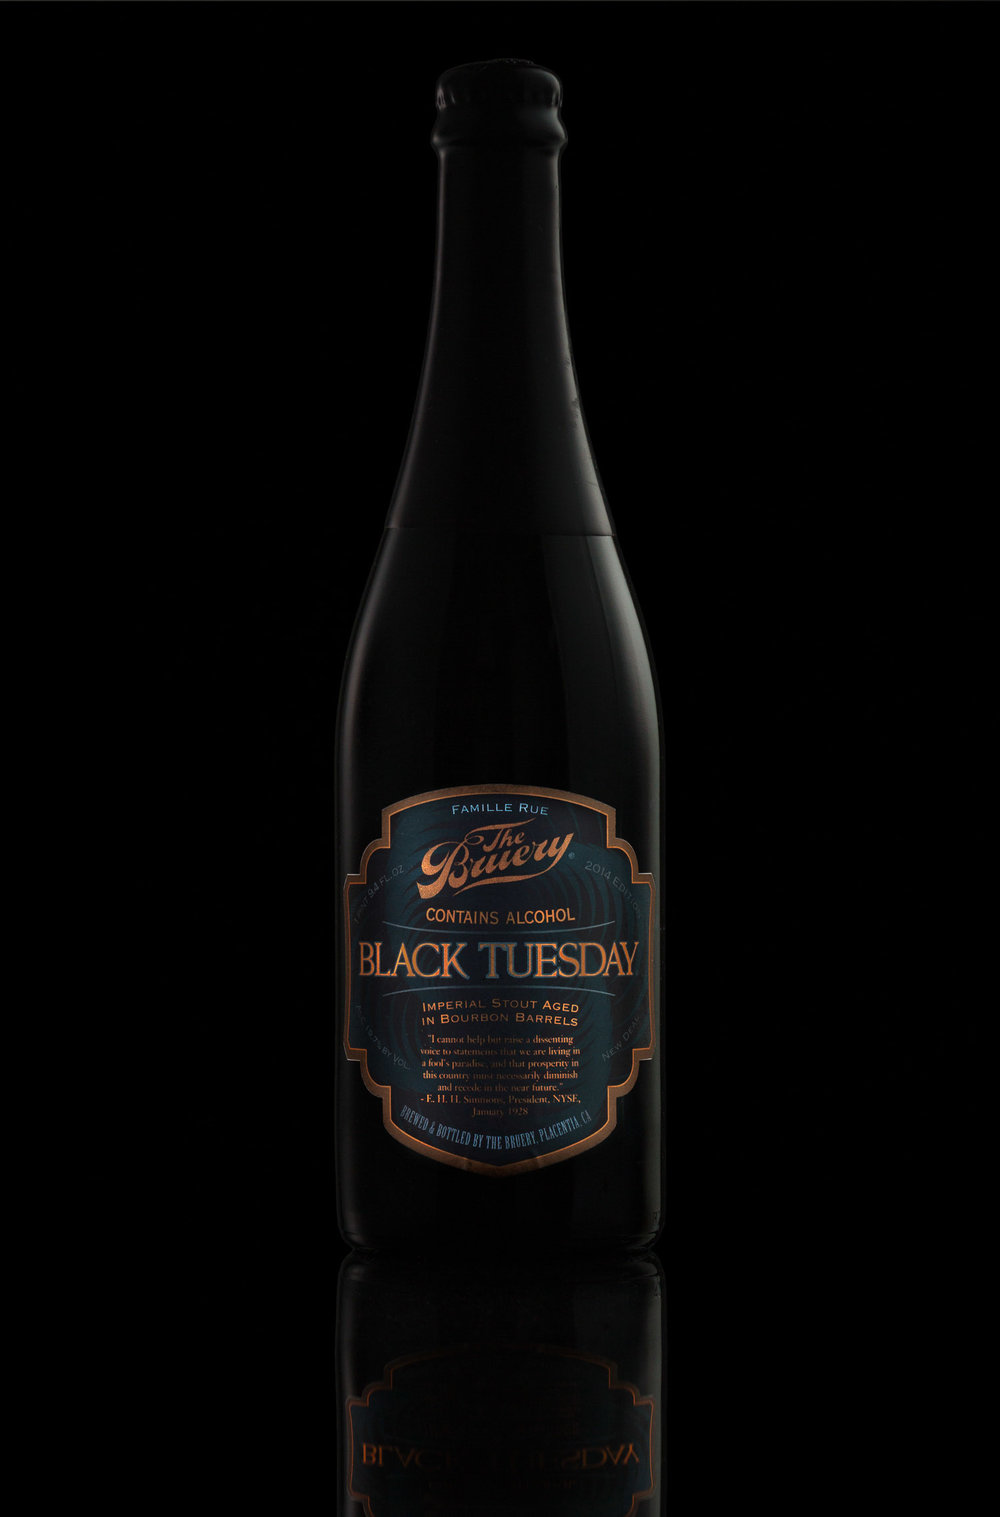 Black Tuesday Imperial Aged Stout by The Bruery, Orange County, CA